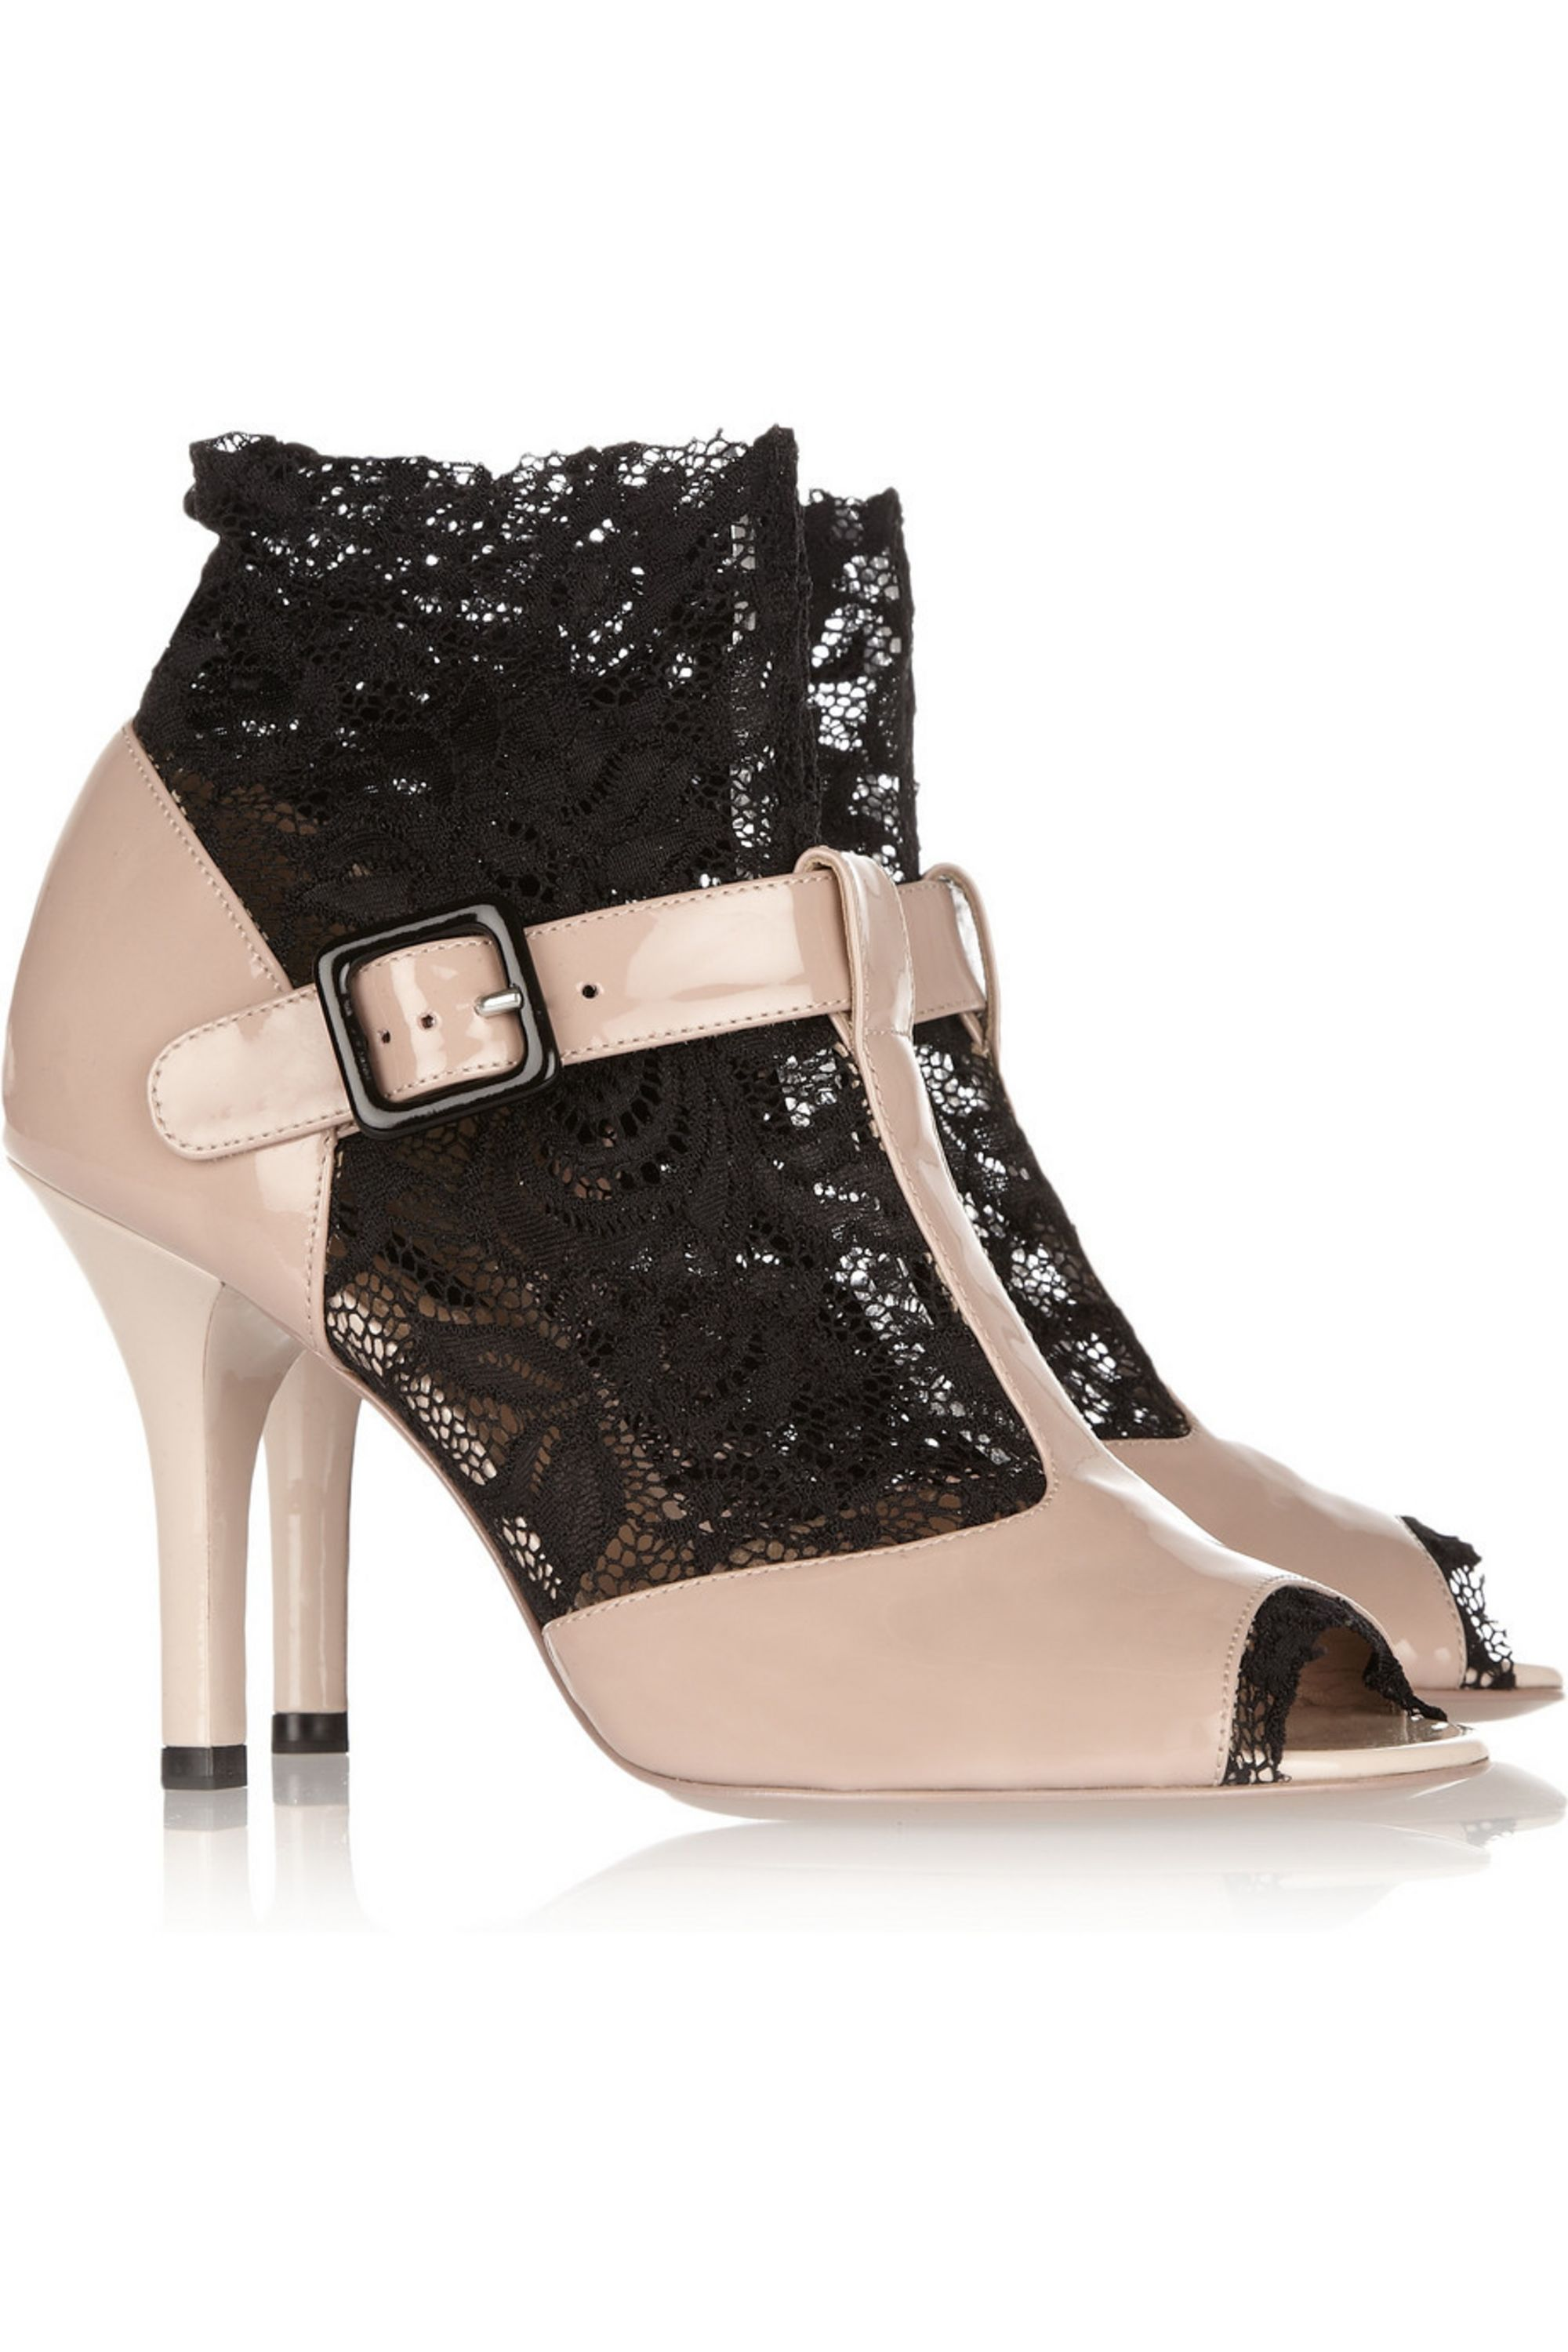 Dolce & Gabbana Lace-insert patent-leather sandals